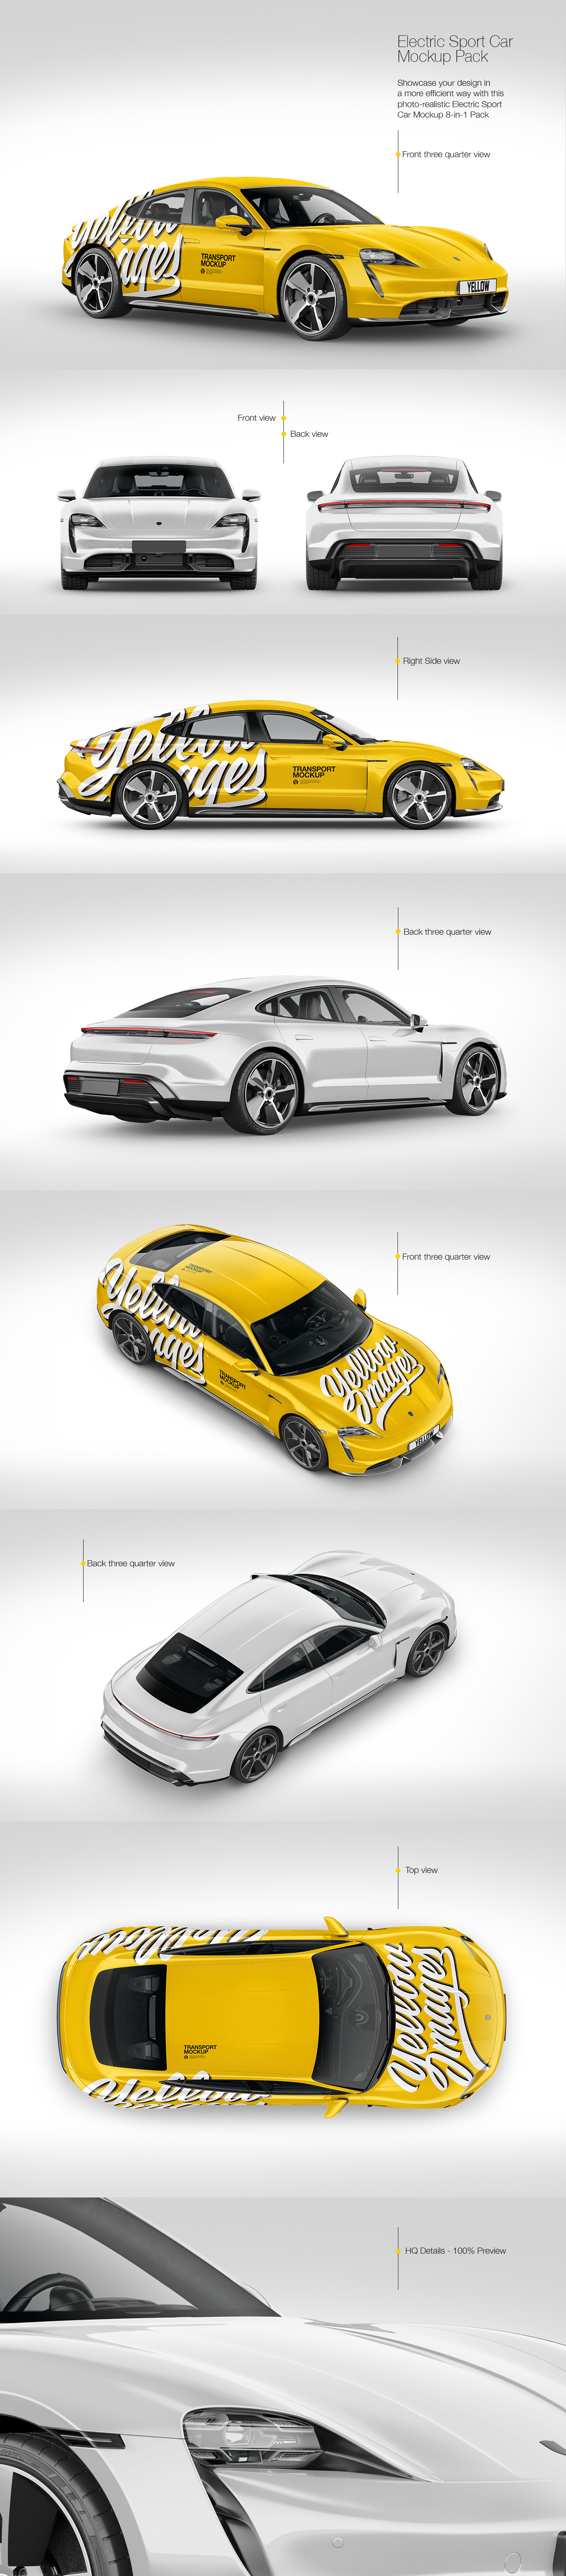 Download Electric Sport Car Mockup Pack In Handpicked Sets Of Vehicles On Yellow Images Creative Store Yellowimages Mockups